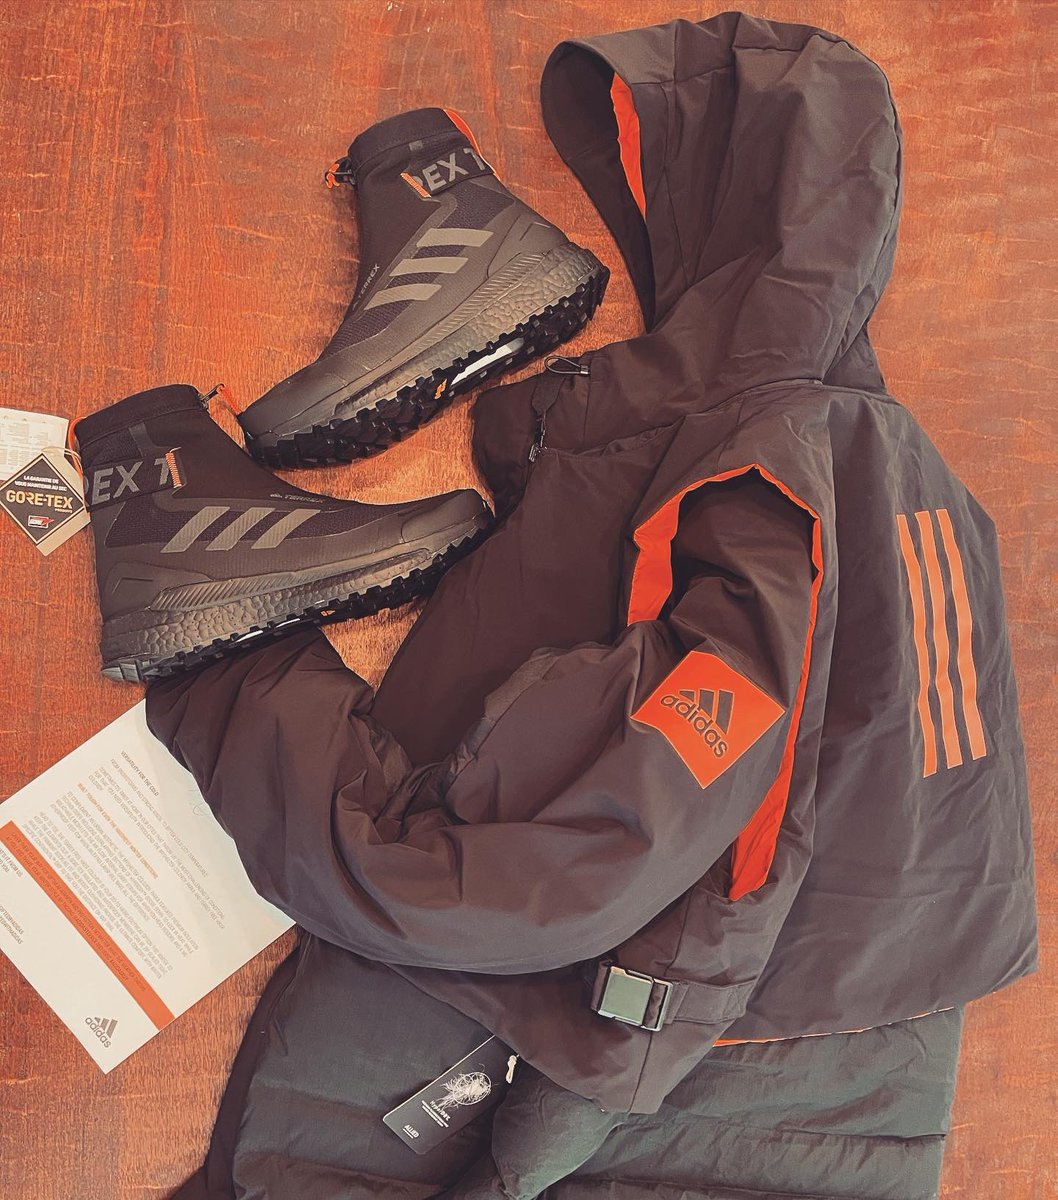 This care package was nuts! Unboxed here  Thanks @adidasterrex 🙌🙌 #giftedbyadidas #adidasrdy #terrexfreehiker #adidasparka